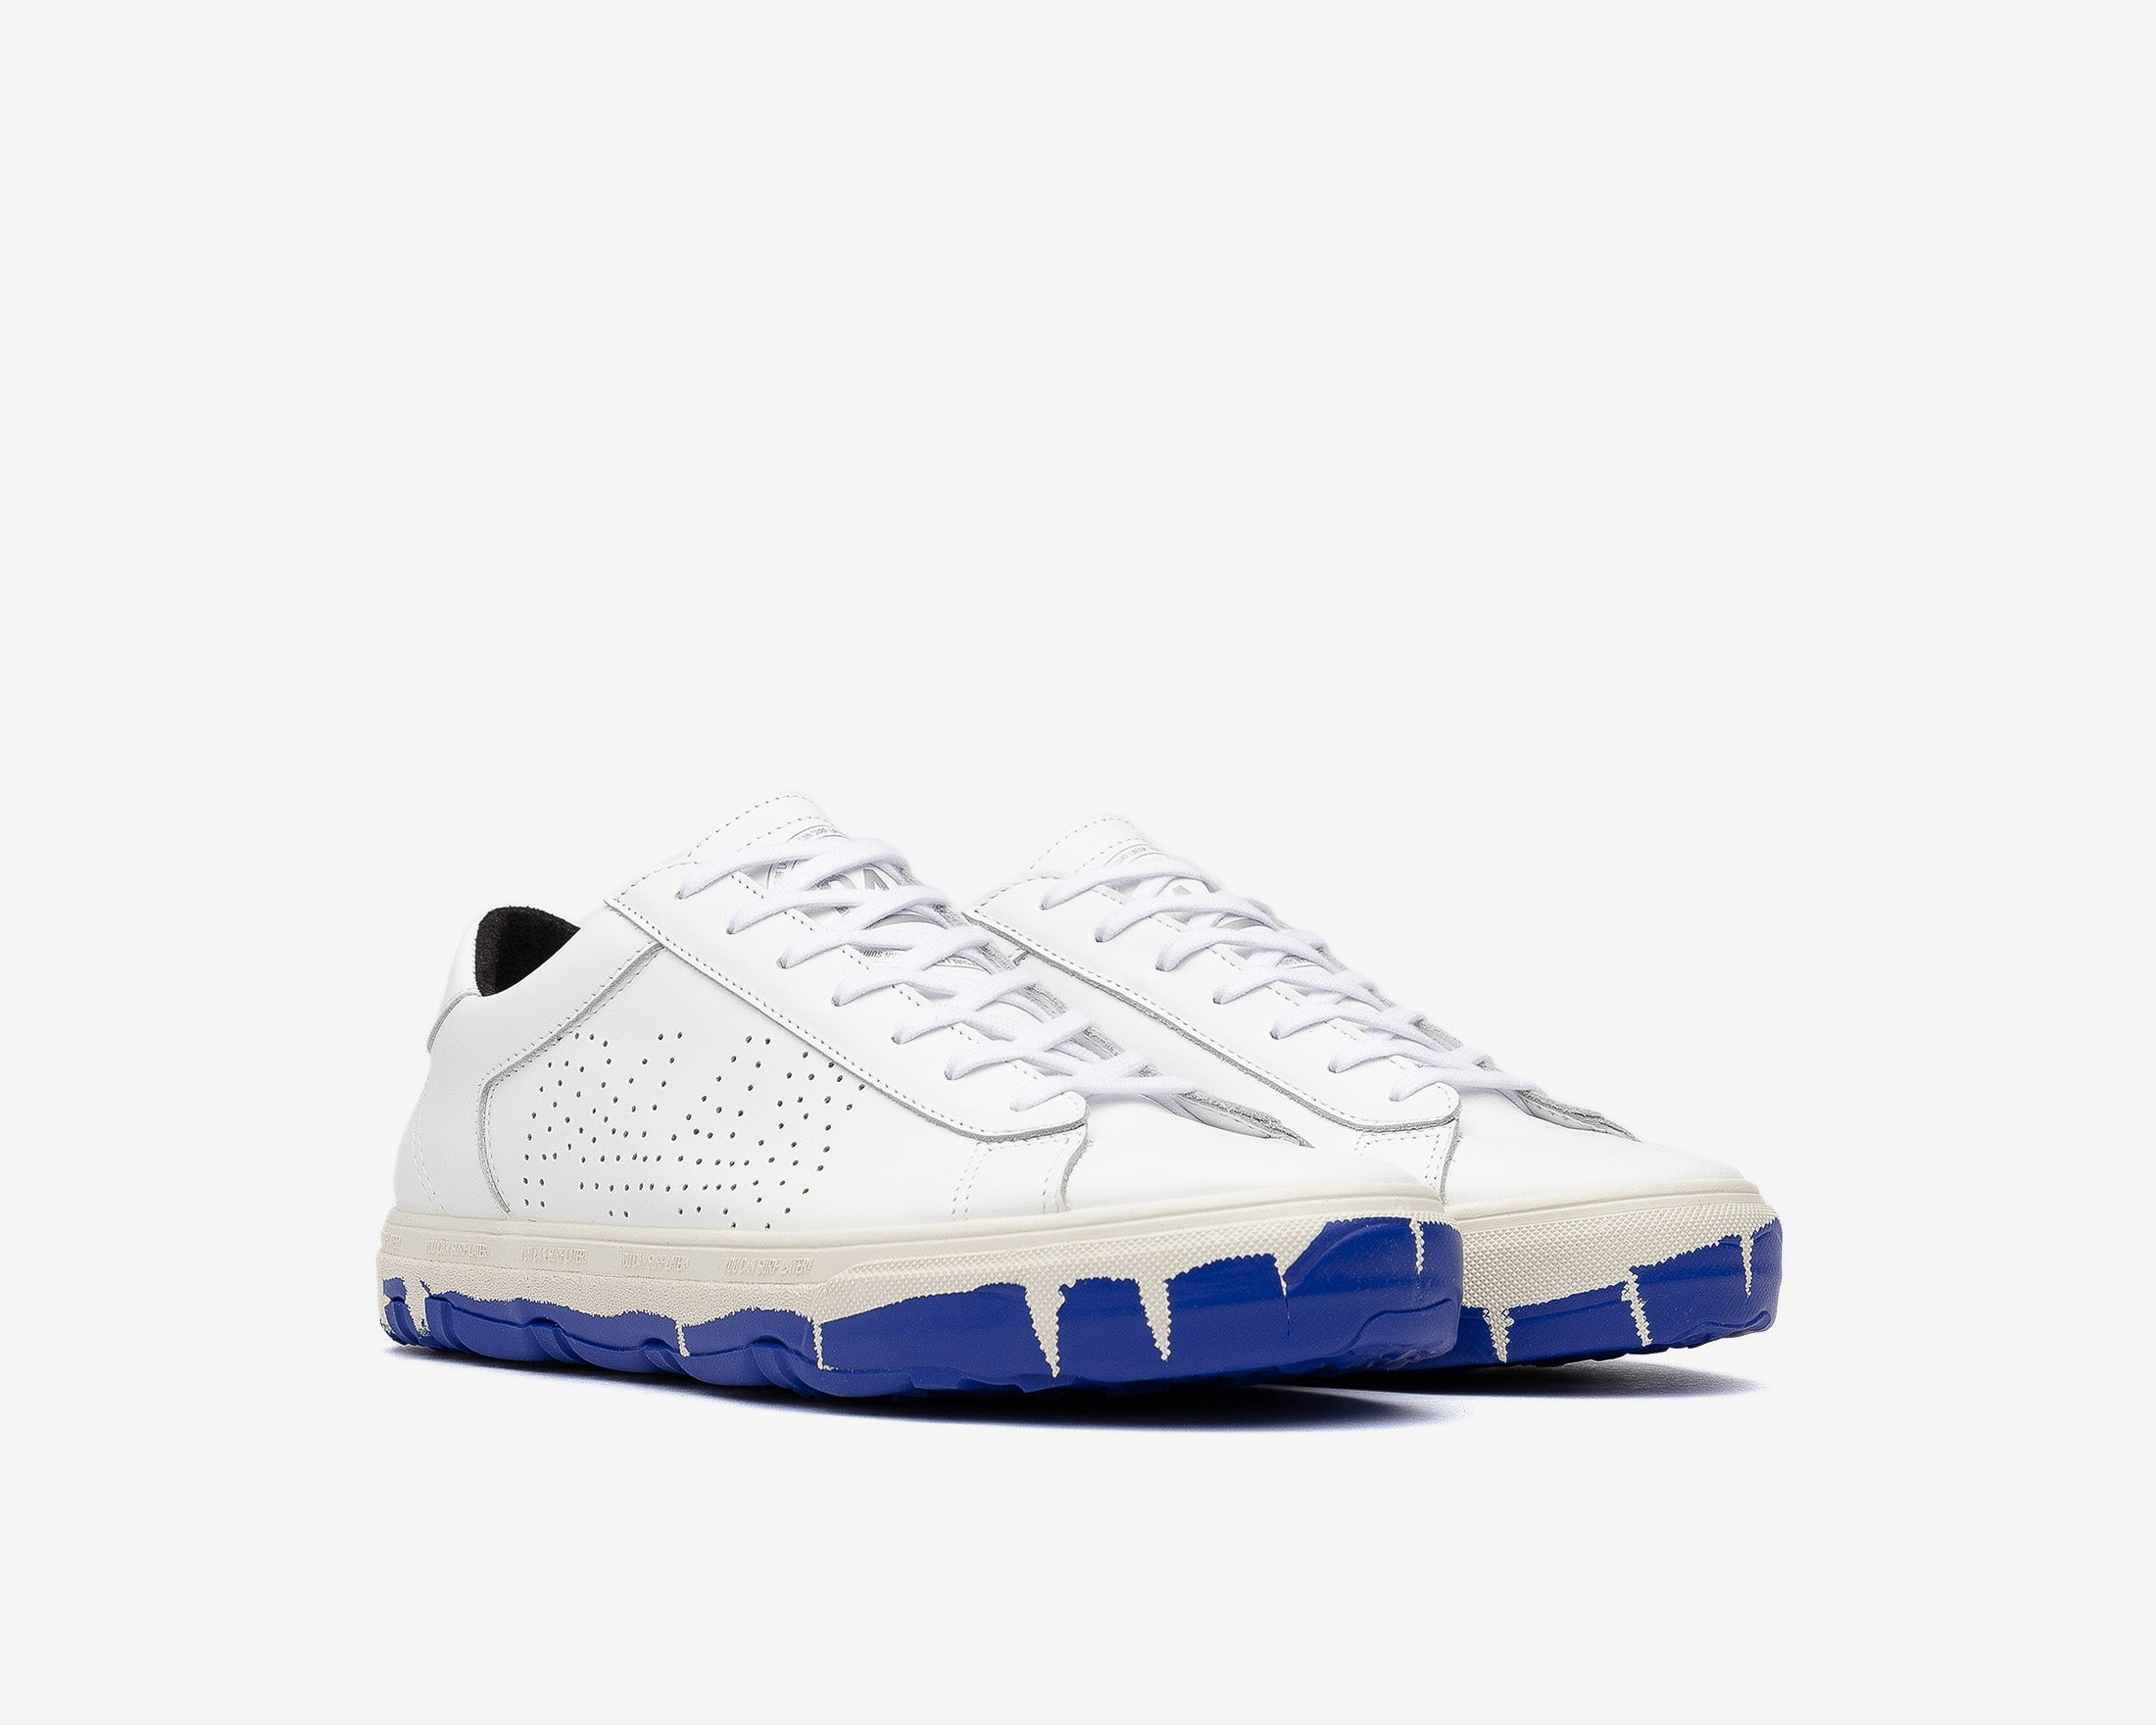 Y.C.S.L. Vibram Low-Top Sneaker in White/Royal - Side